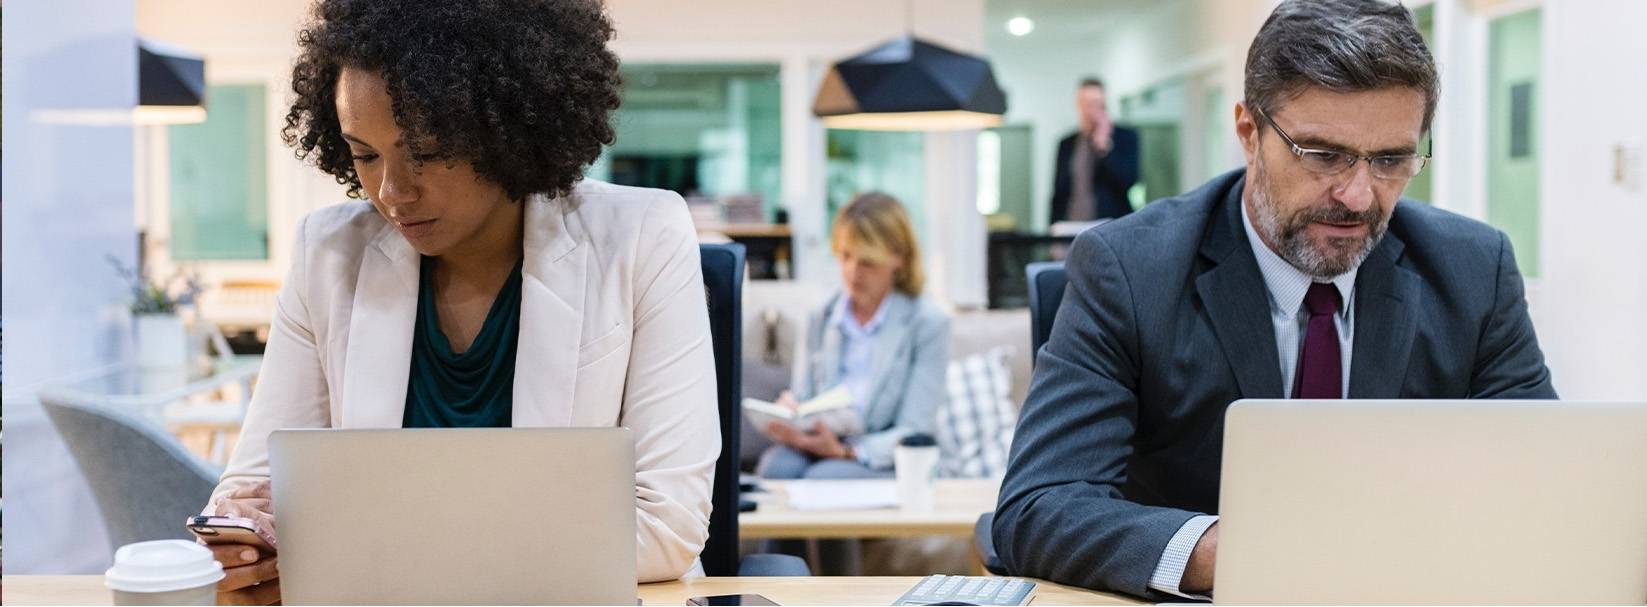 Co-working and flexible office space continue to drive deals